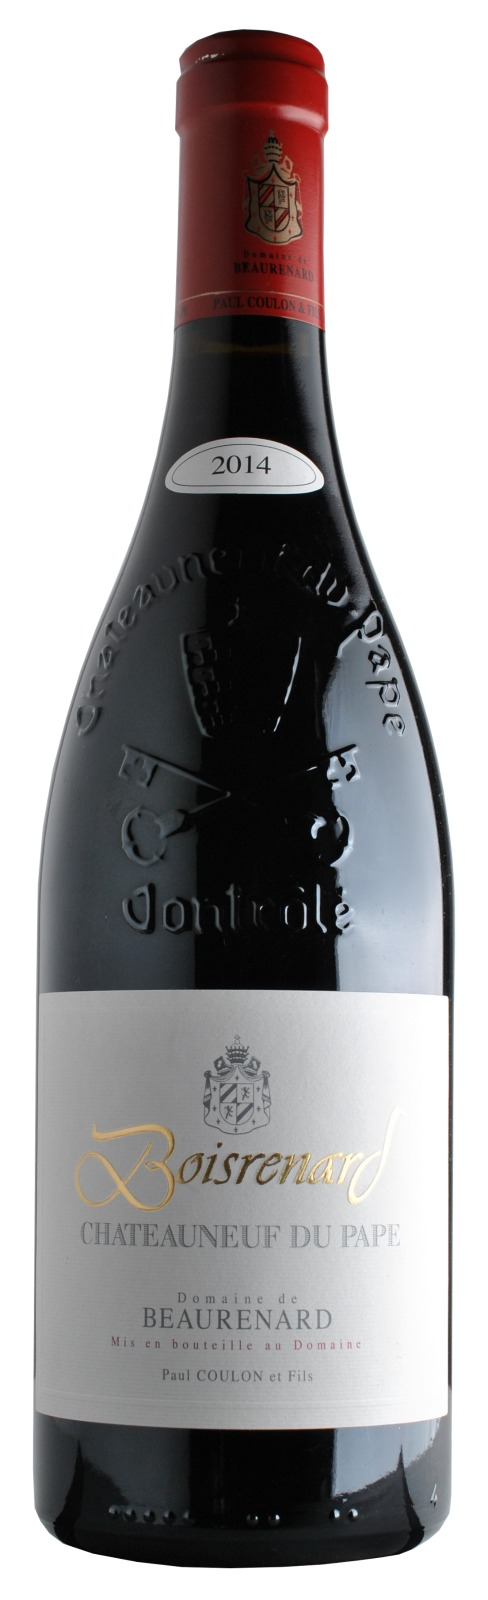 Domaine de Beaurenard Chateauneuf du Pape Cuvee Boisrenard 2015, 3L (WS97) from The BPW - Merchants of rare and fine wines.